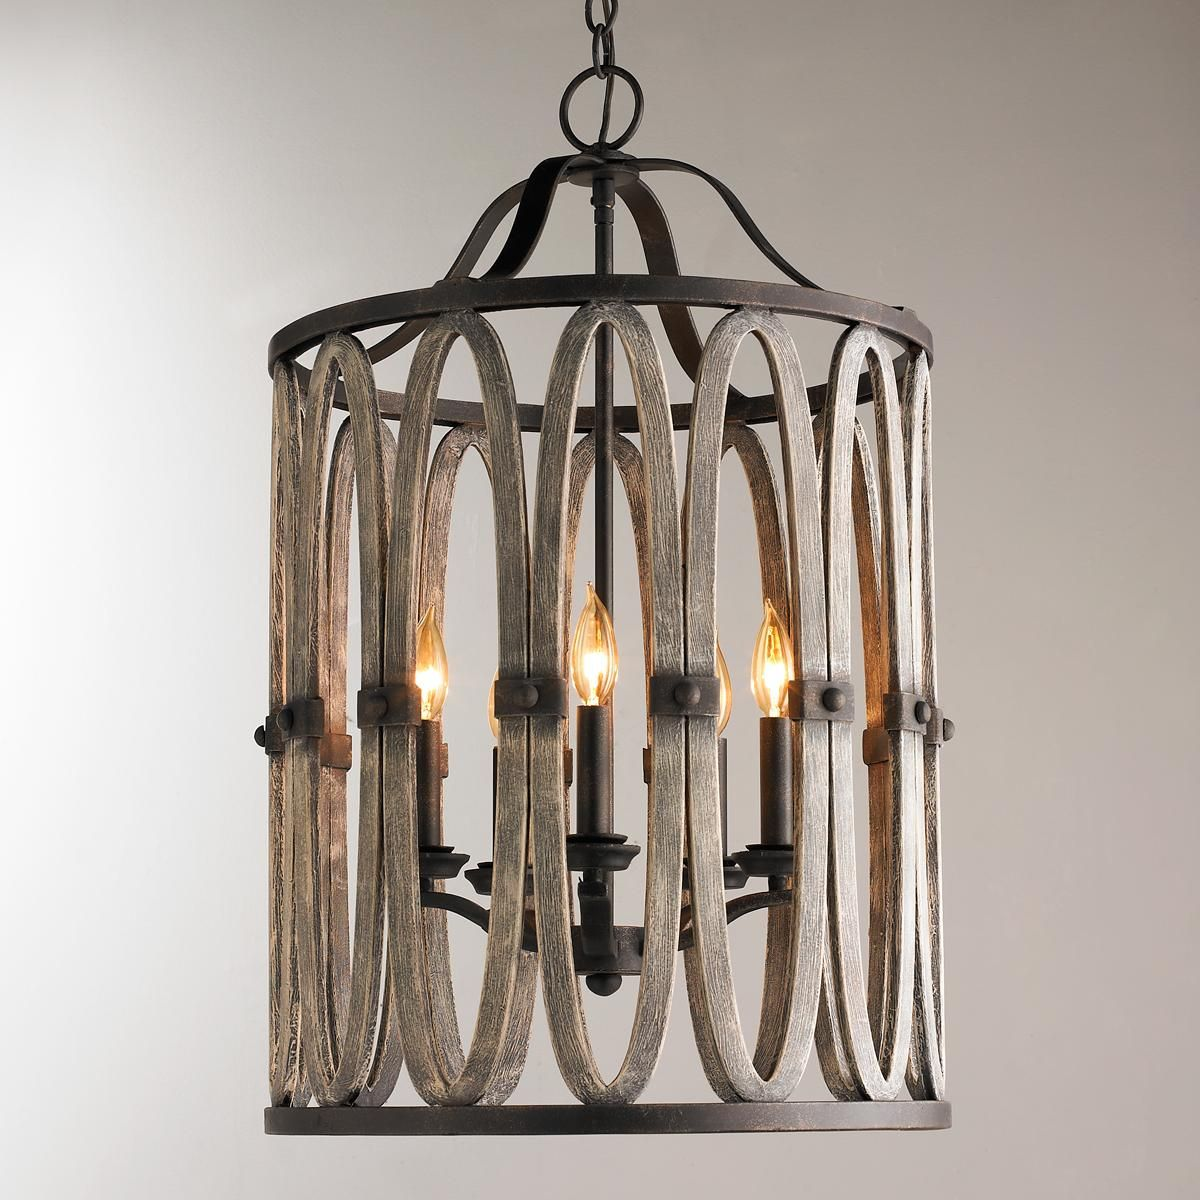 Big Foyer Lights : Driftwood entwined ovals pendant light foyer